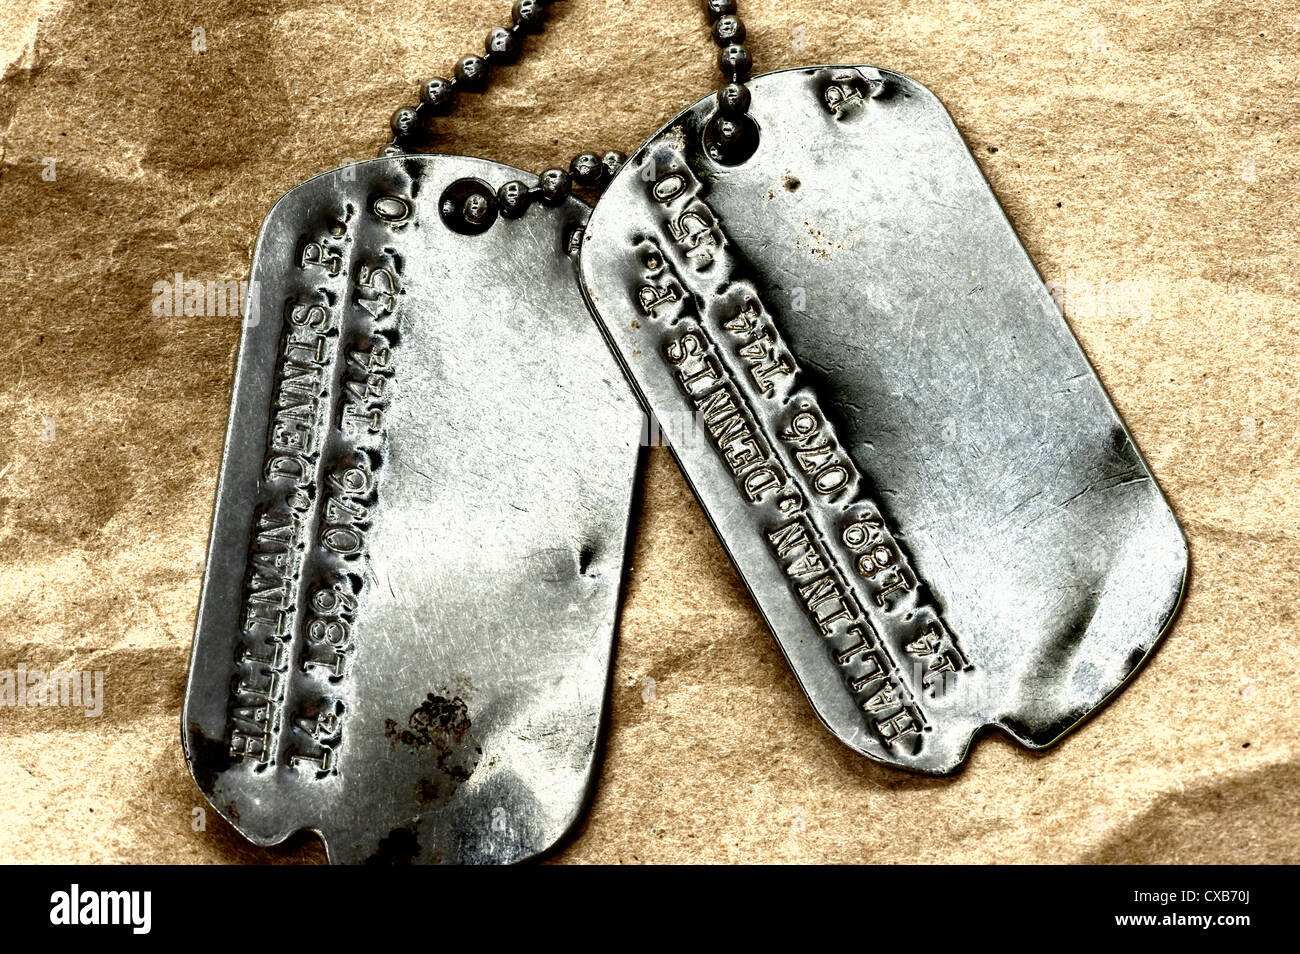 closeup conceptual view of American serviceman dog tags - Stock Image